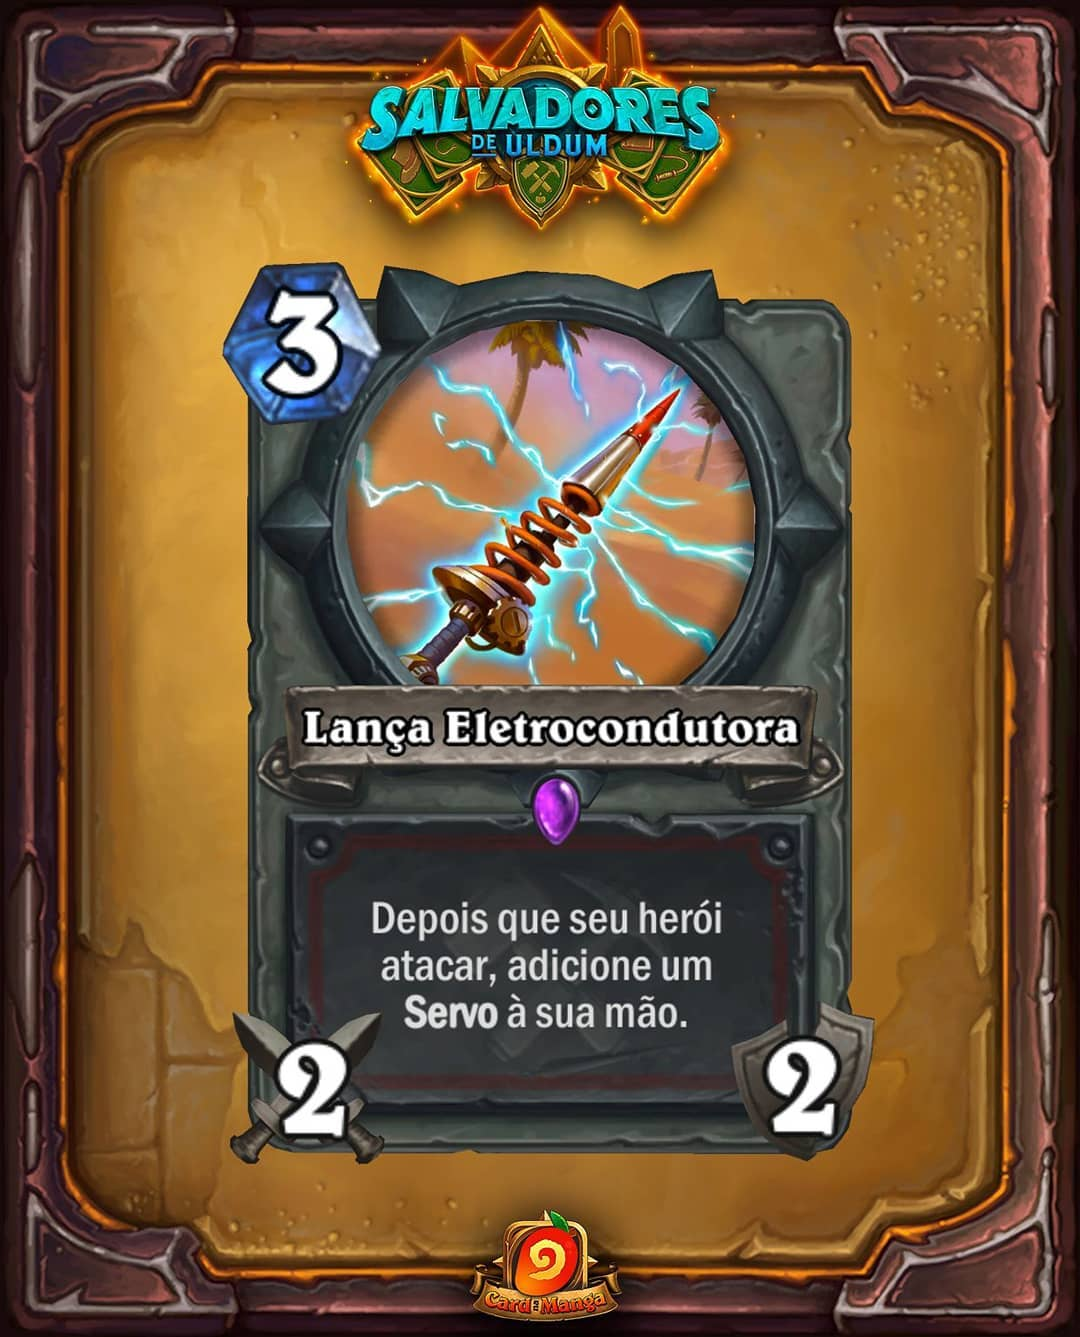 Lança Eletrocondutora - Card Reveal PTBR